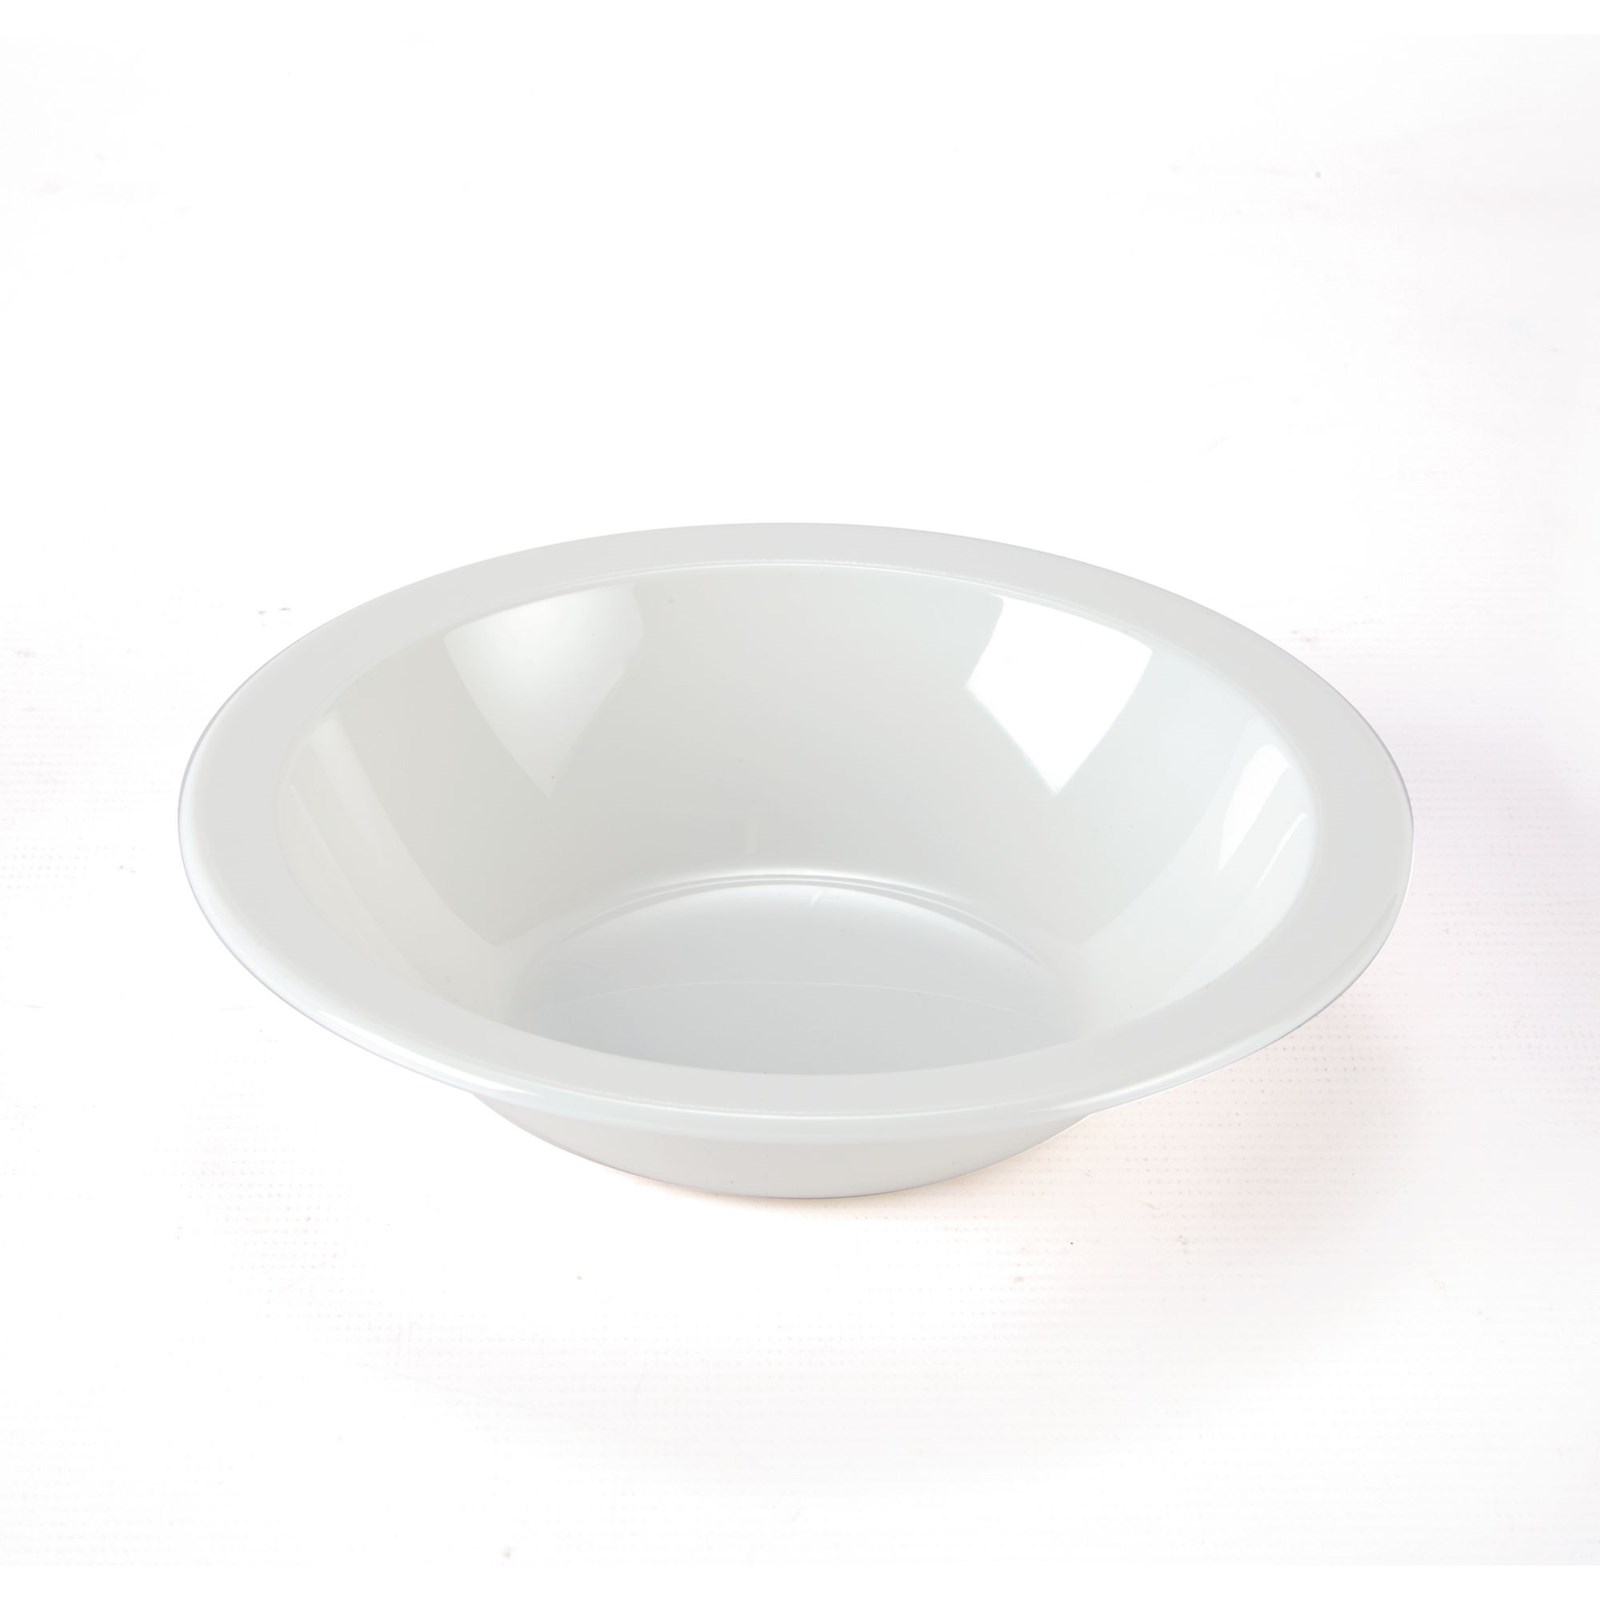 Polycarb Rimmed Bowls 170mm - White